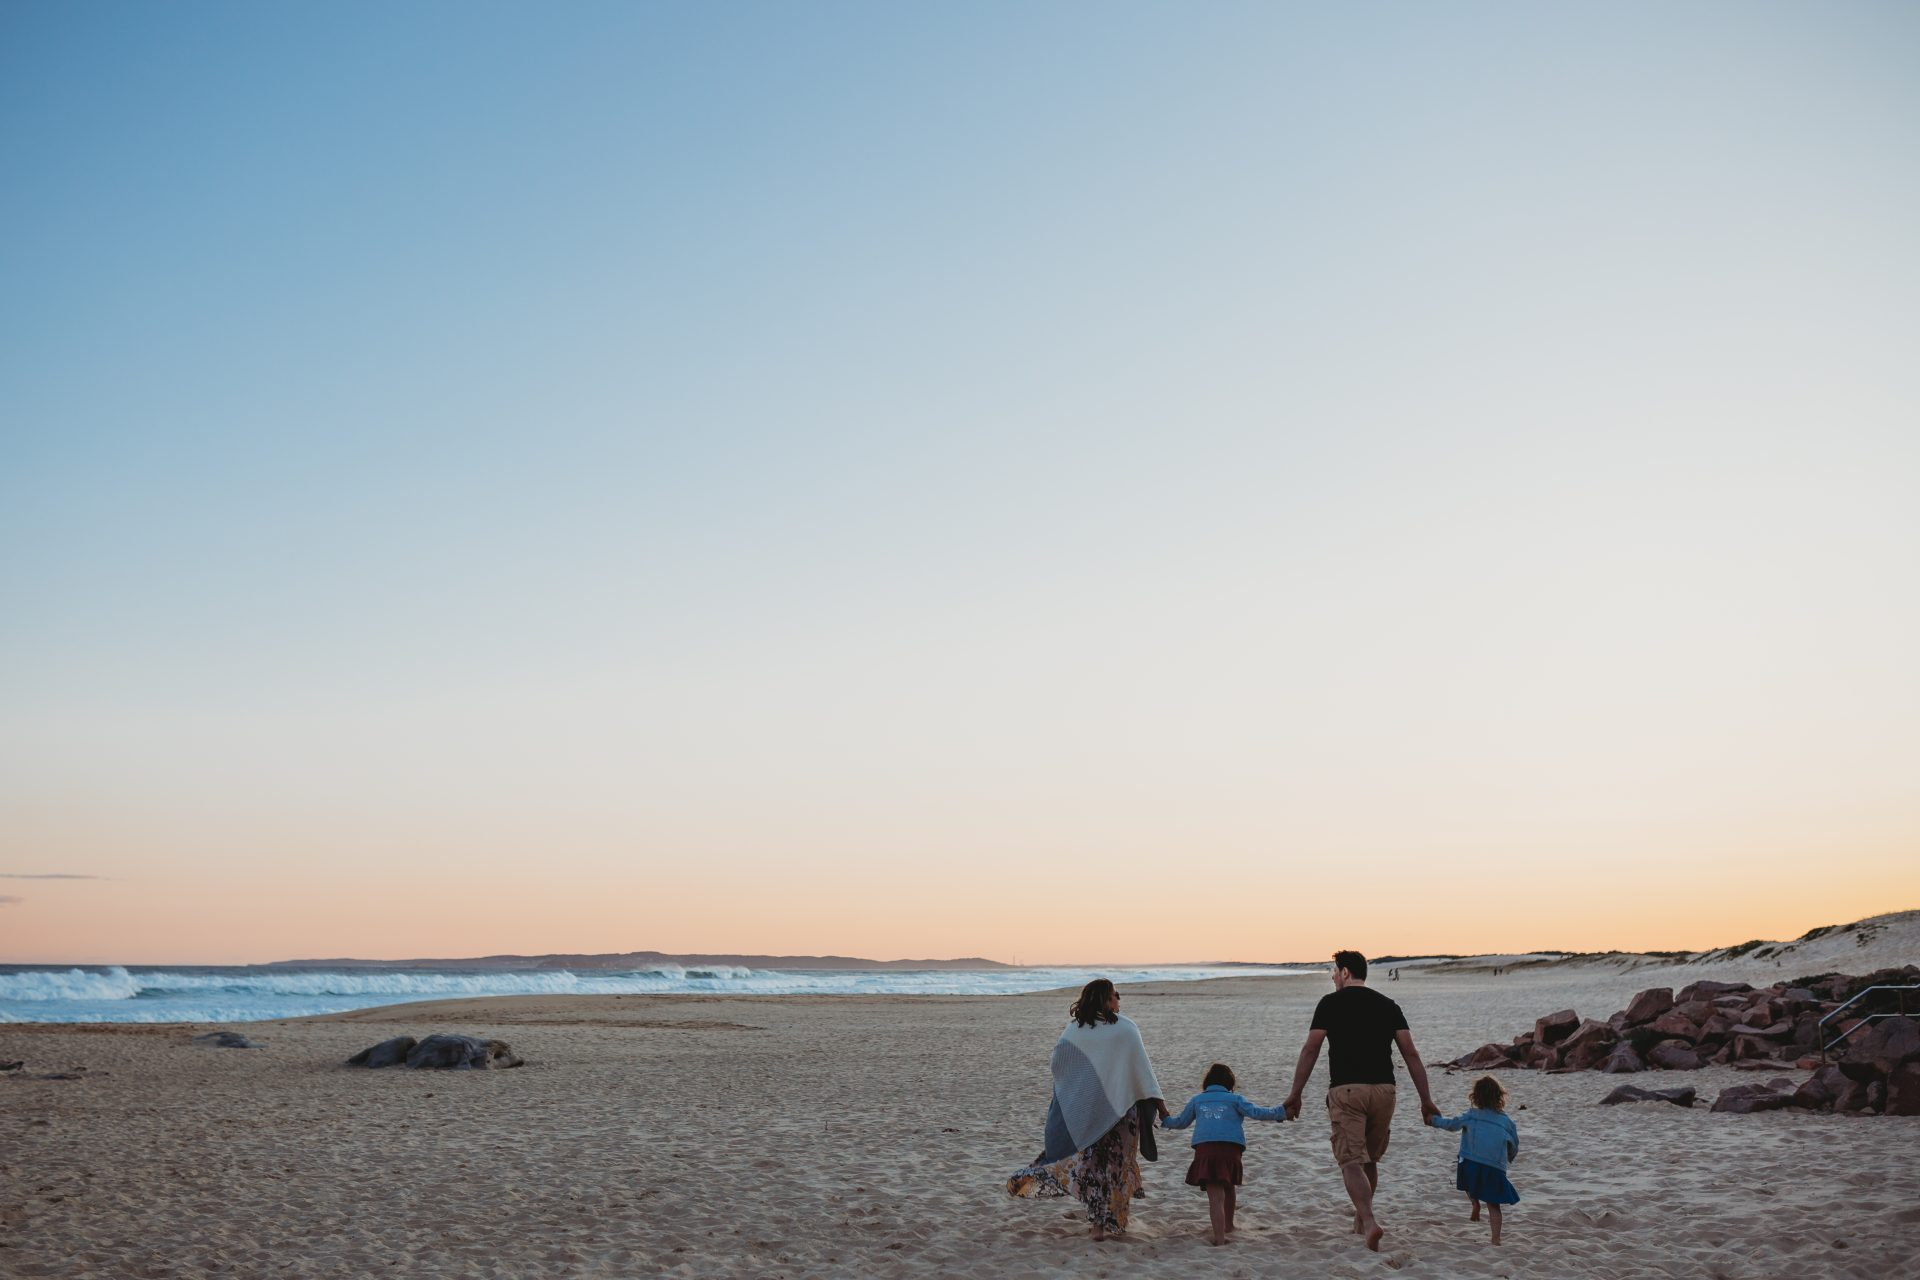 Family walking away from camera, holding hands on the beach at sunset